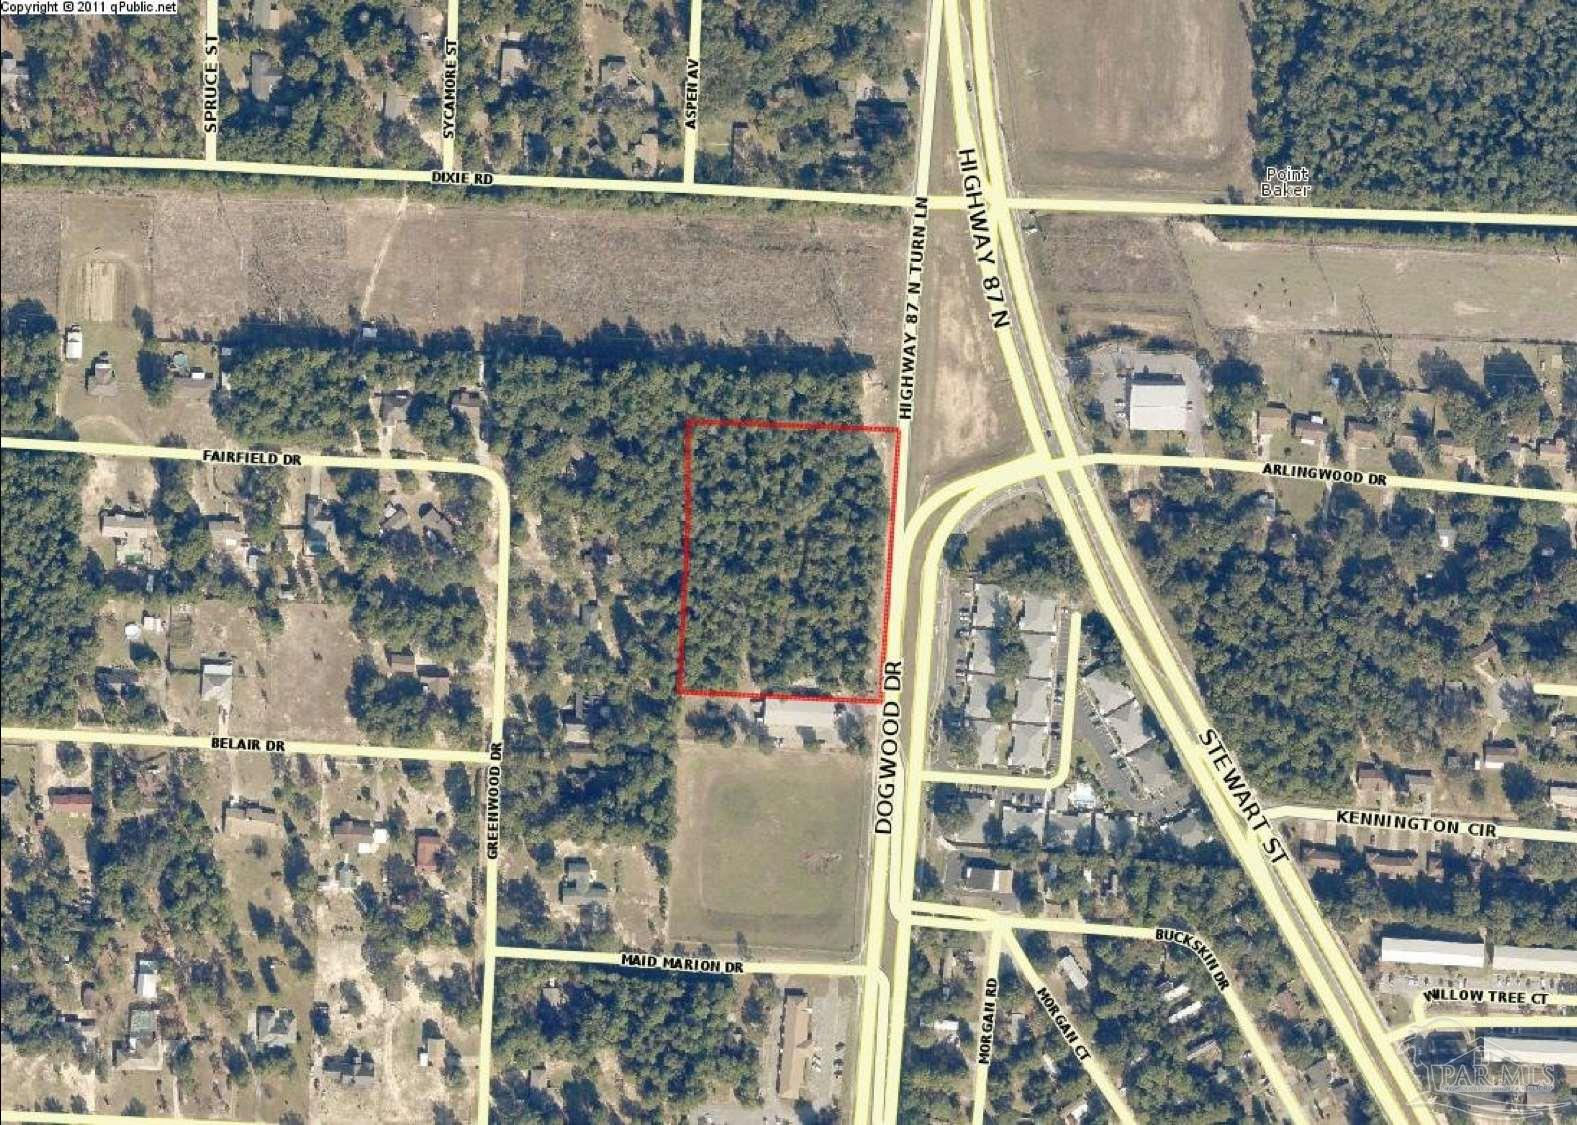 *Owner will subdivide into separate lots** Prime Hwy 87 acreage available in Milton, Florida. There is a total of +/- 4.3 acres of commercial land available and the owner would consider subdividing the property into 5 separate lots. The 4.3 acres is available for $275,000 or the individual lots can be purchased for $59,500/lot. The site has a total of 500 feet of frontage on Hwy 87 and +/- 370'-380' deep. The commercial acreage would be the ideal location for a restaurant, retail, or local business with it's excellent visibility and being within close proximity to the NAS Whiting Field military base, downtown Milton, and Pace.